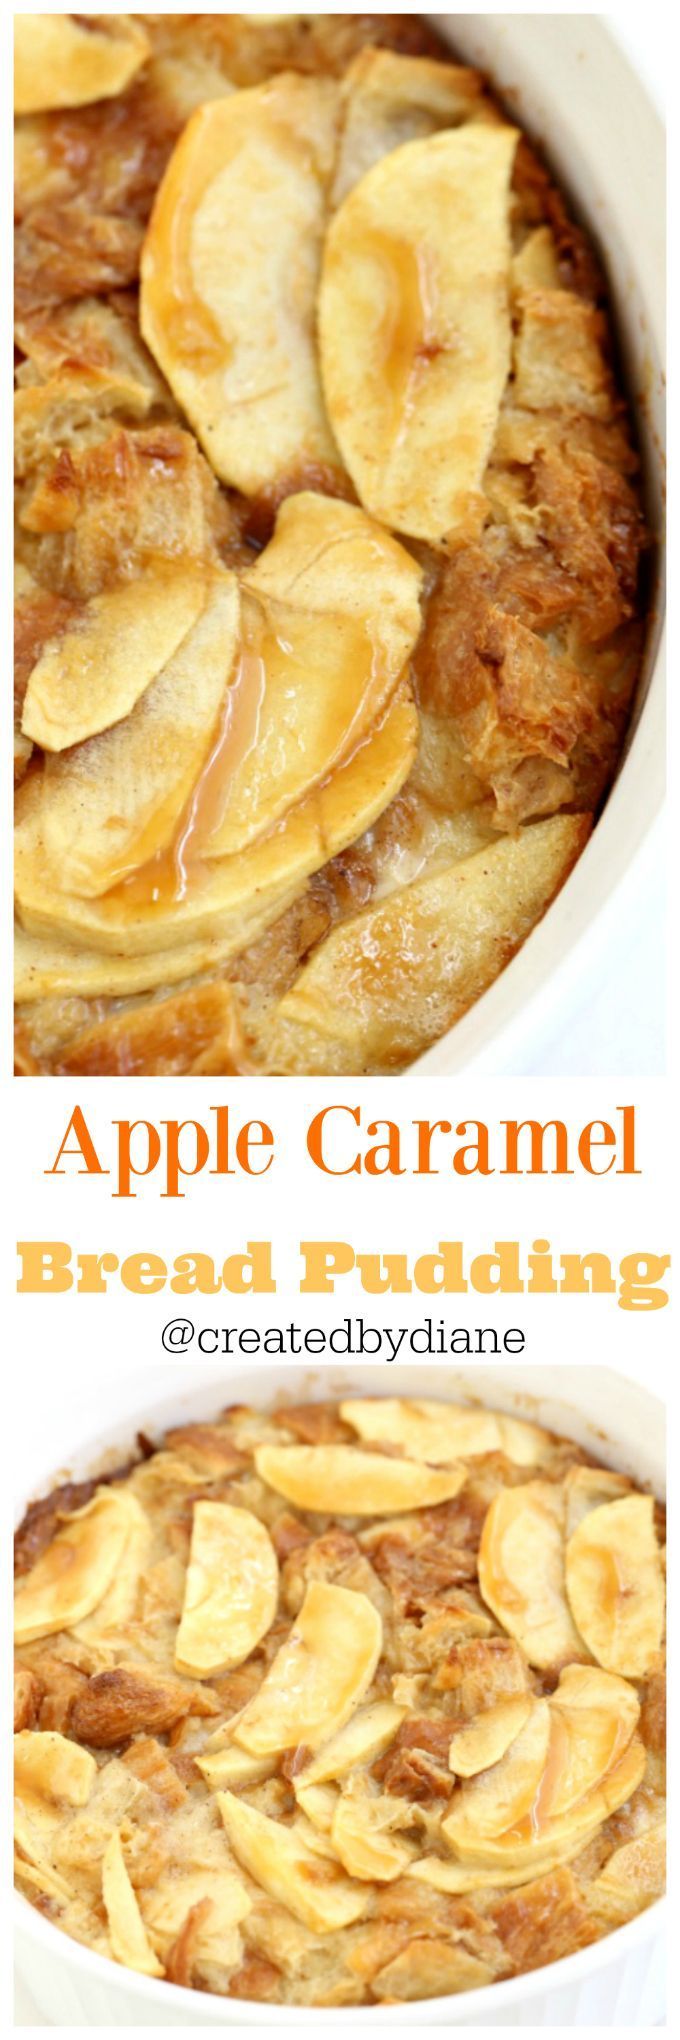 who knew bread and apples could taste so amazing, with a few more items this easy and comforting desserts can be whipped up quickly